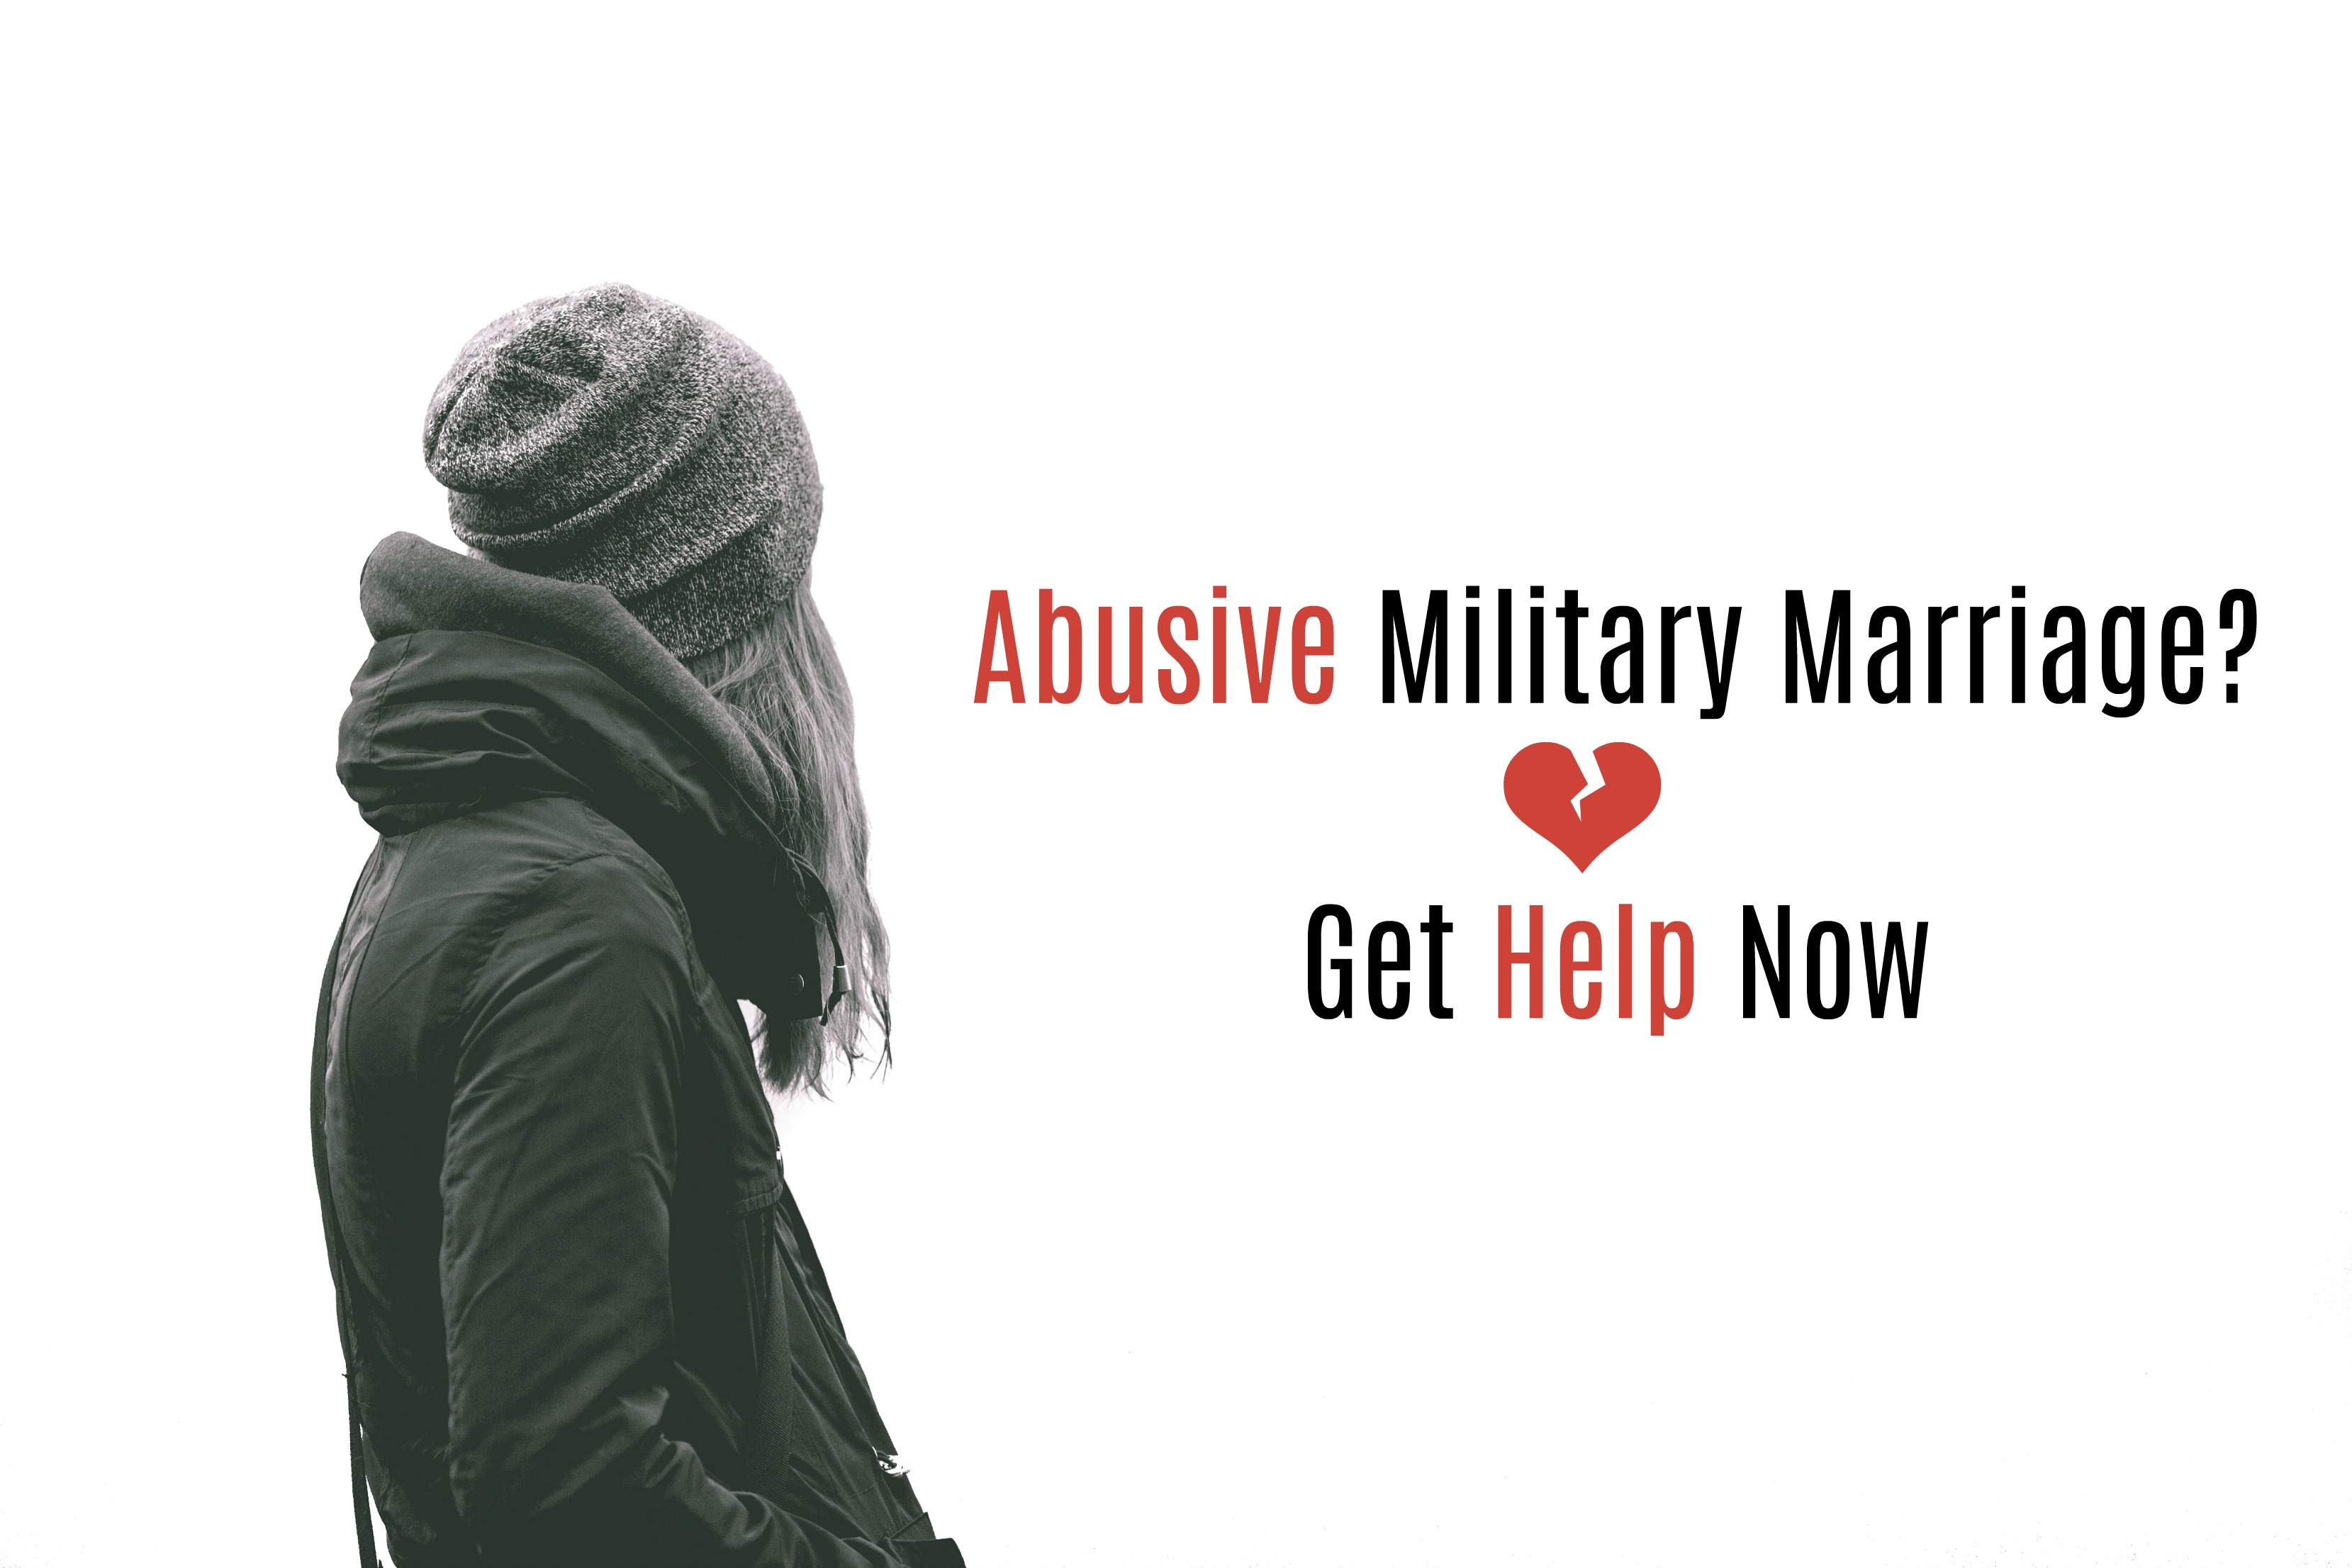 Abusive Military Marriage? Get Help Now